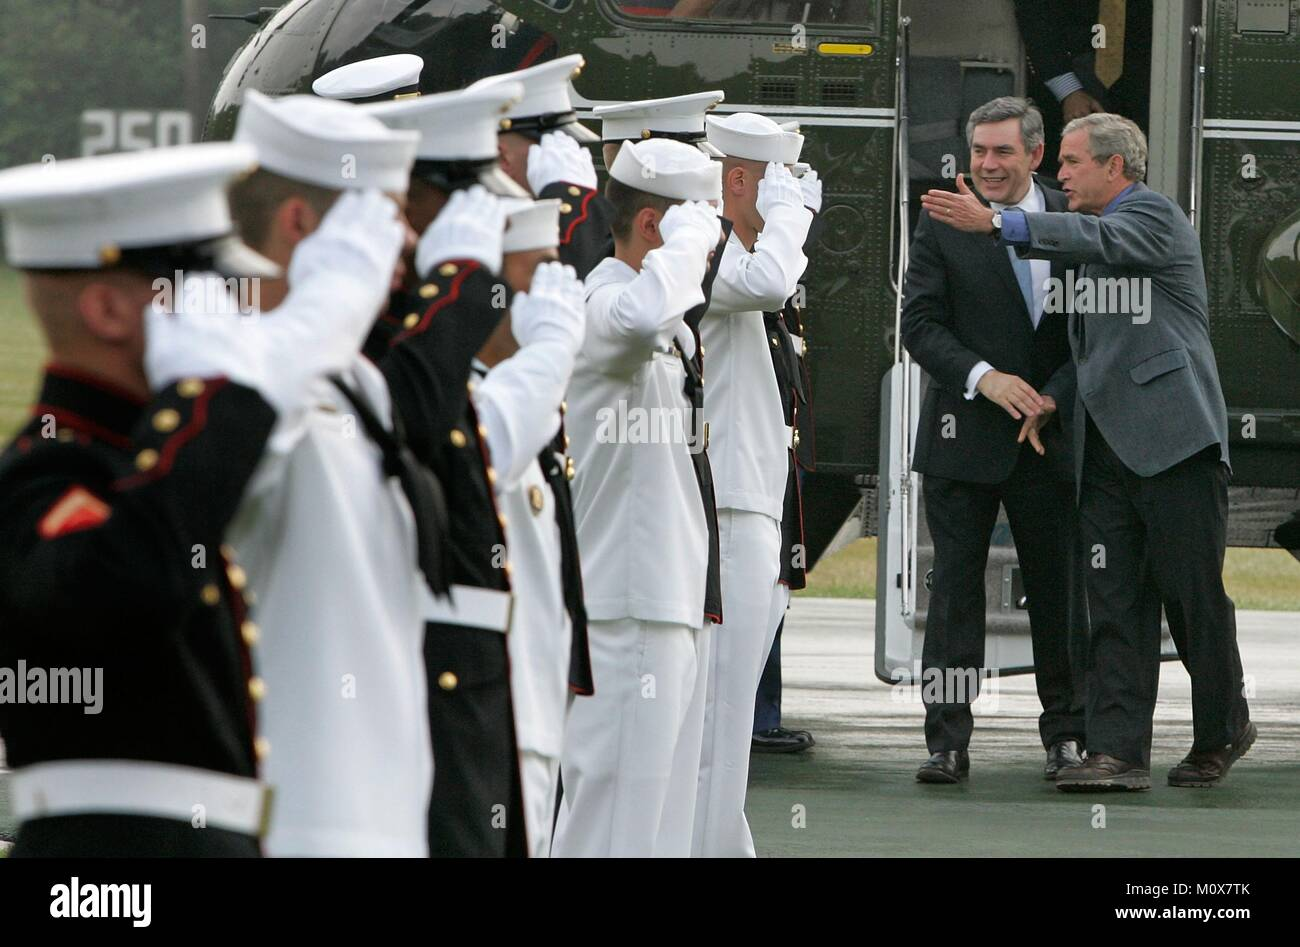 CAMP DAVID, MD - JULY 29: (AFP OUT) Members of the Military salute U.S. President George W. Bush (R) as he greets - Stock Image